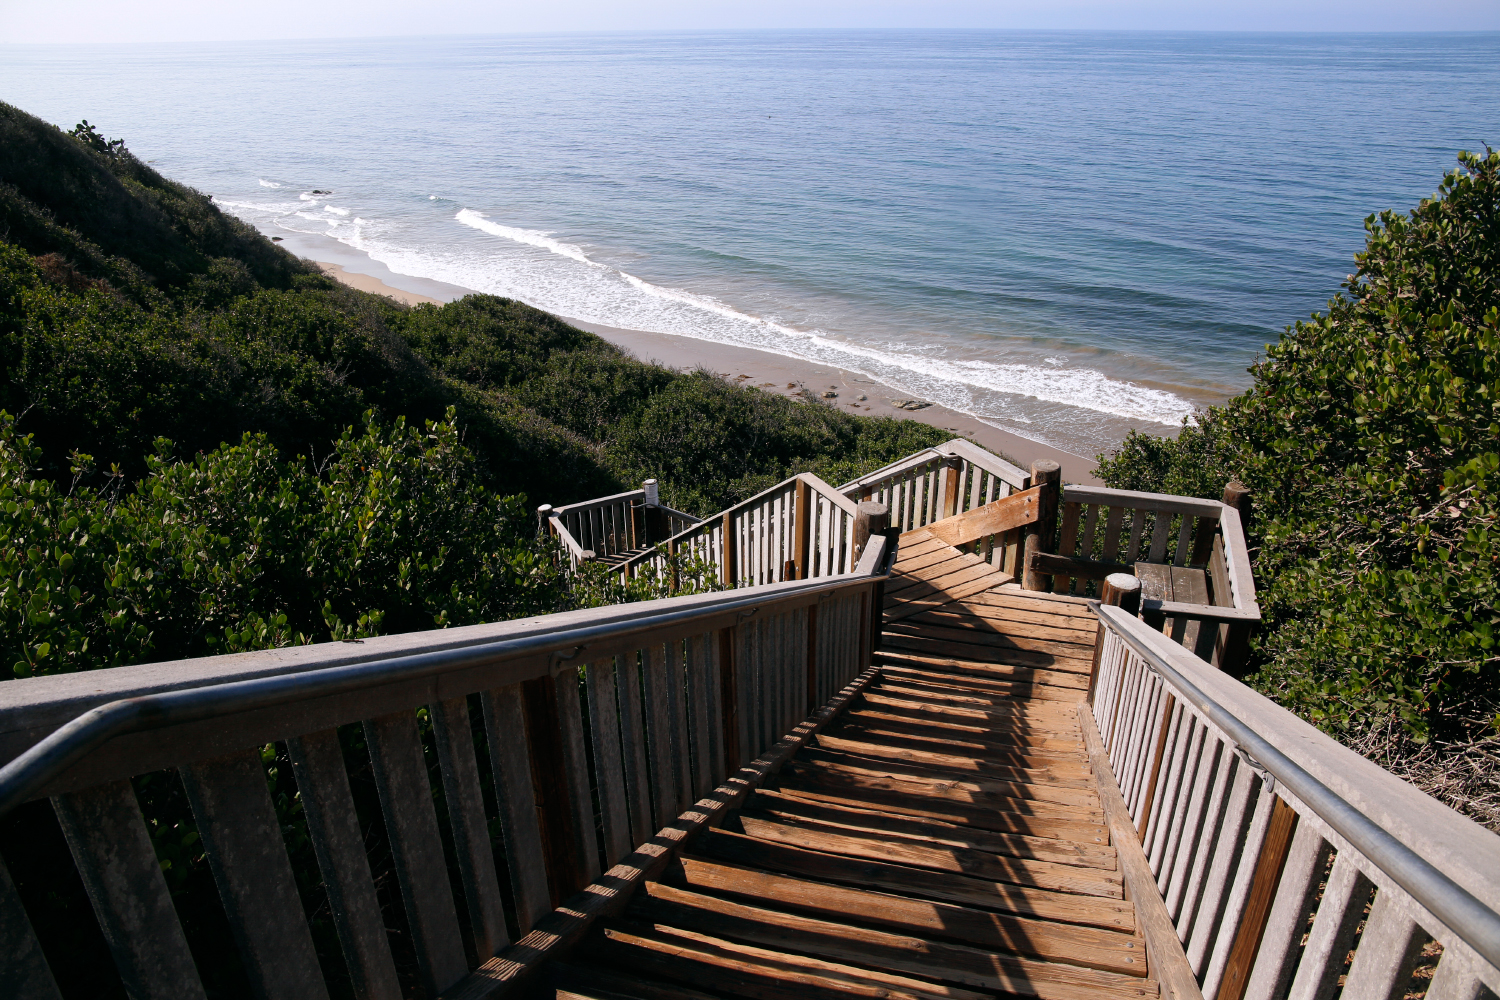 Santa Barbara Beach Wooden Stairs